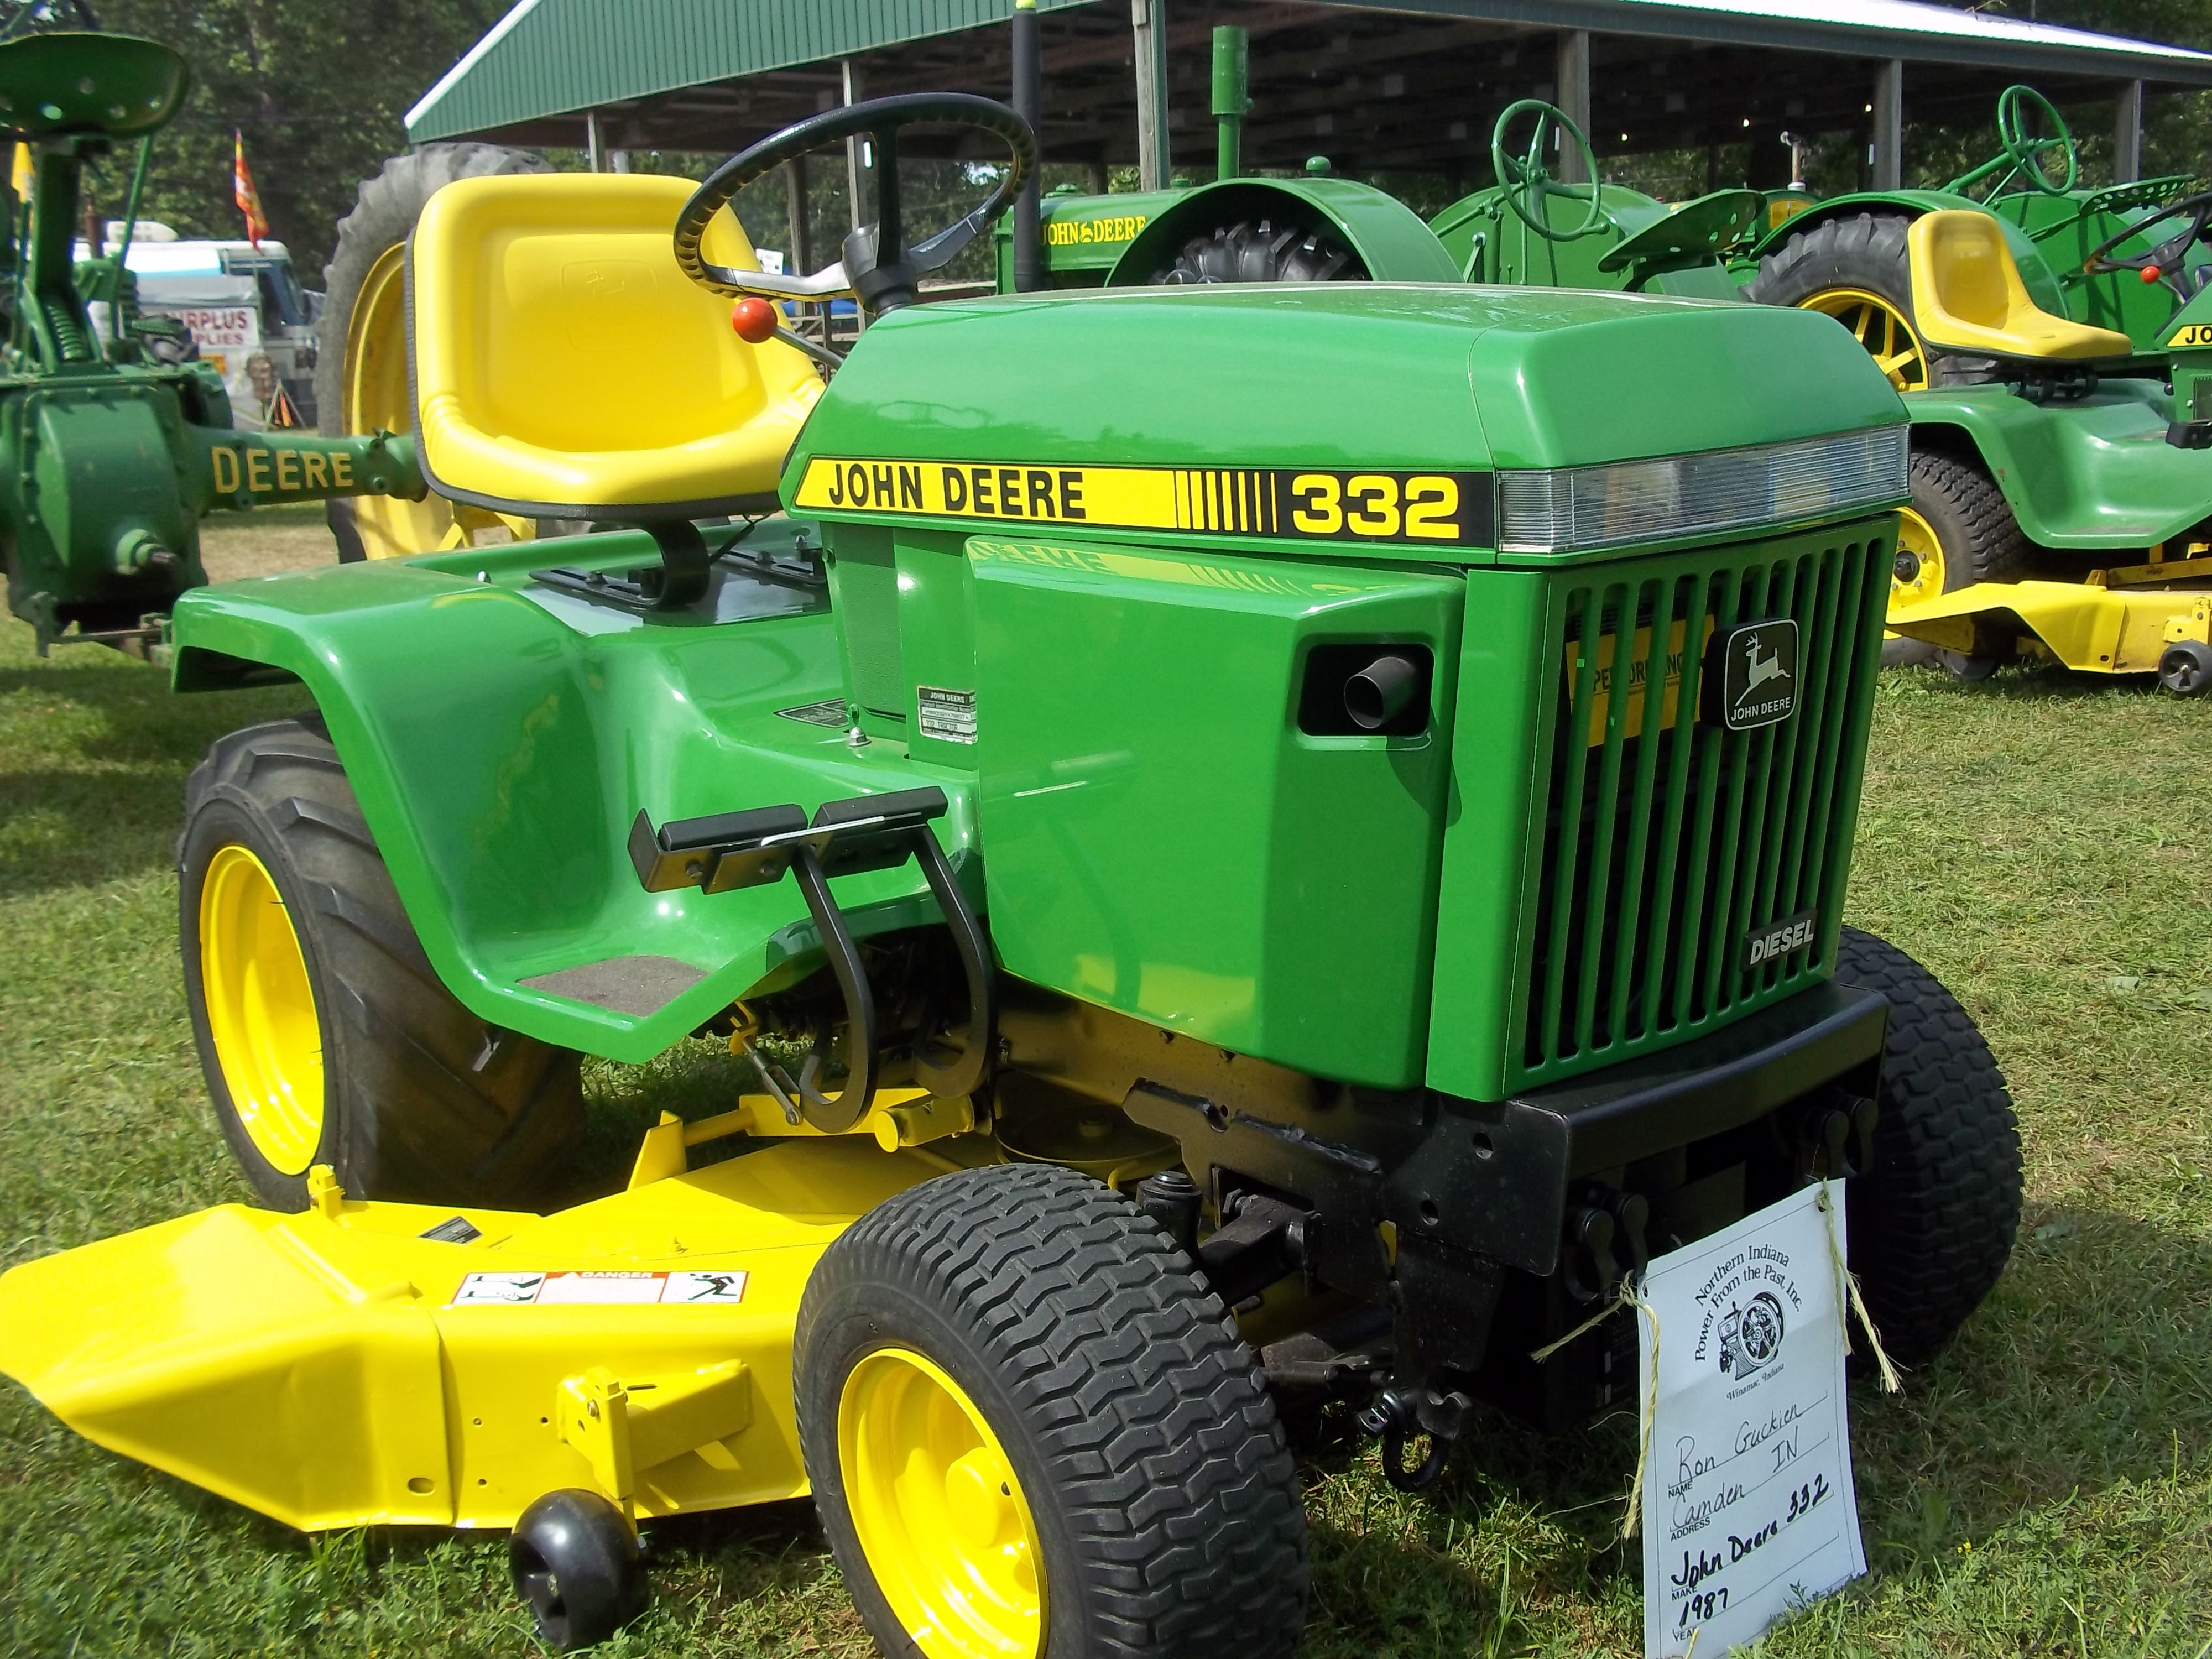 John Deere 332 >> The 3rd John Deere 332 John Deere Equipment Riding Lawn Mowers